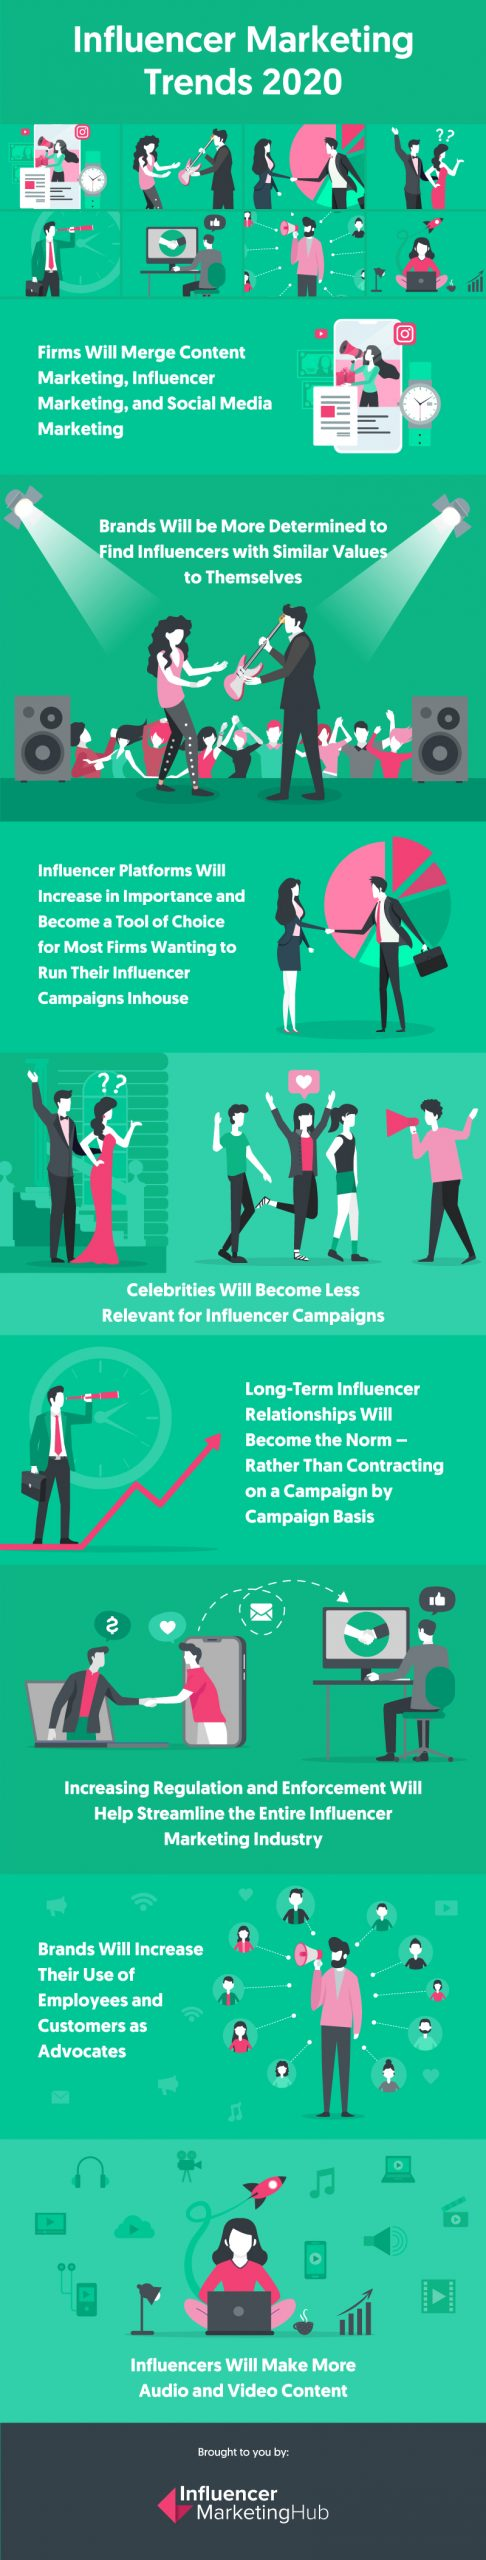 Social Media Marketing Trends 2020.8 Influencer Marketing Trends For 2020 Infographic